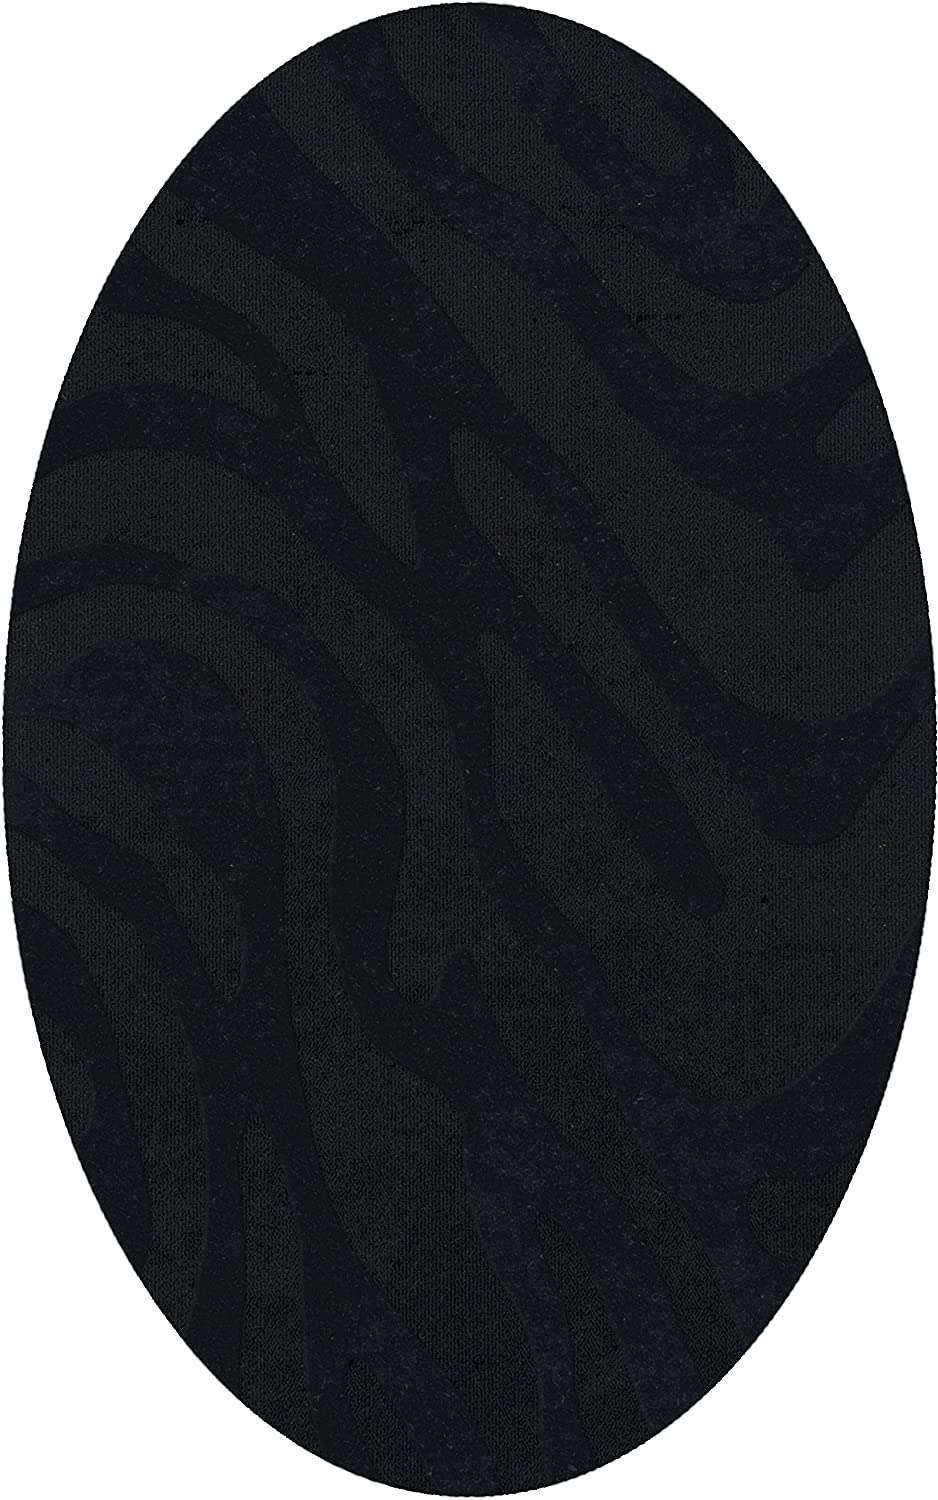 Dalyn Rugs Dover Ranking TOP15 DV2 Rug New Shipping Free Shipping Oval x Black 14' 10'